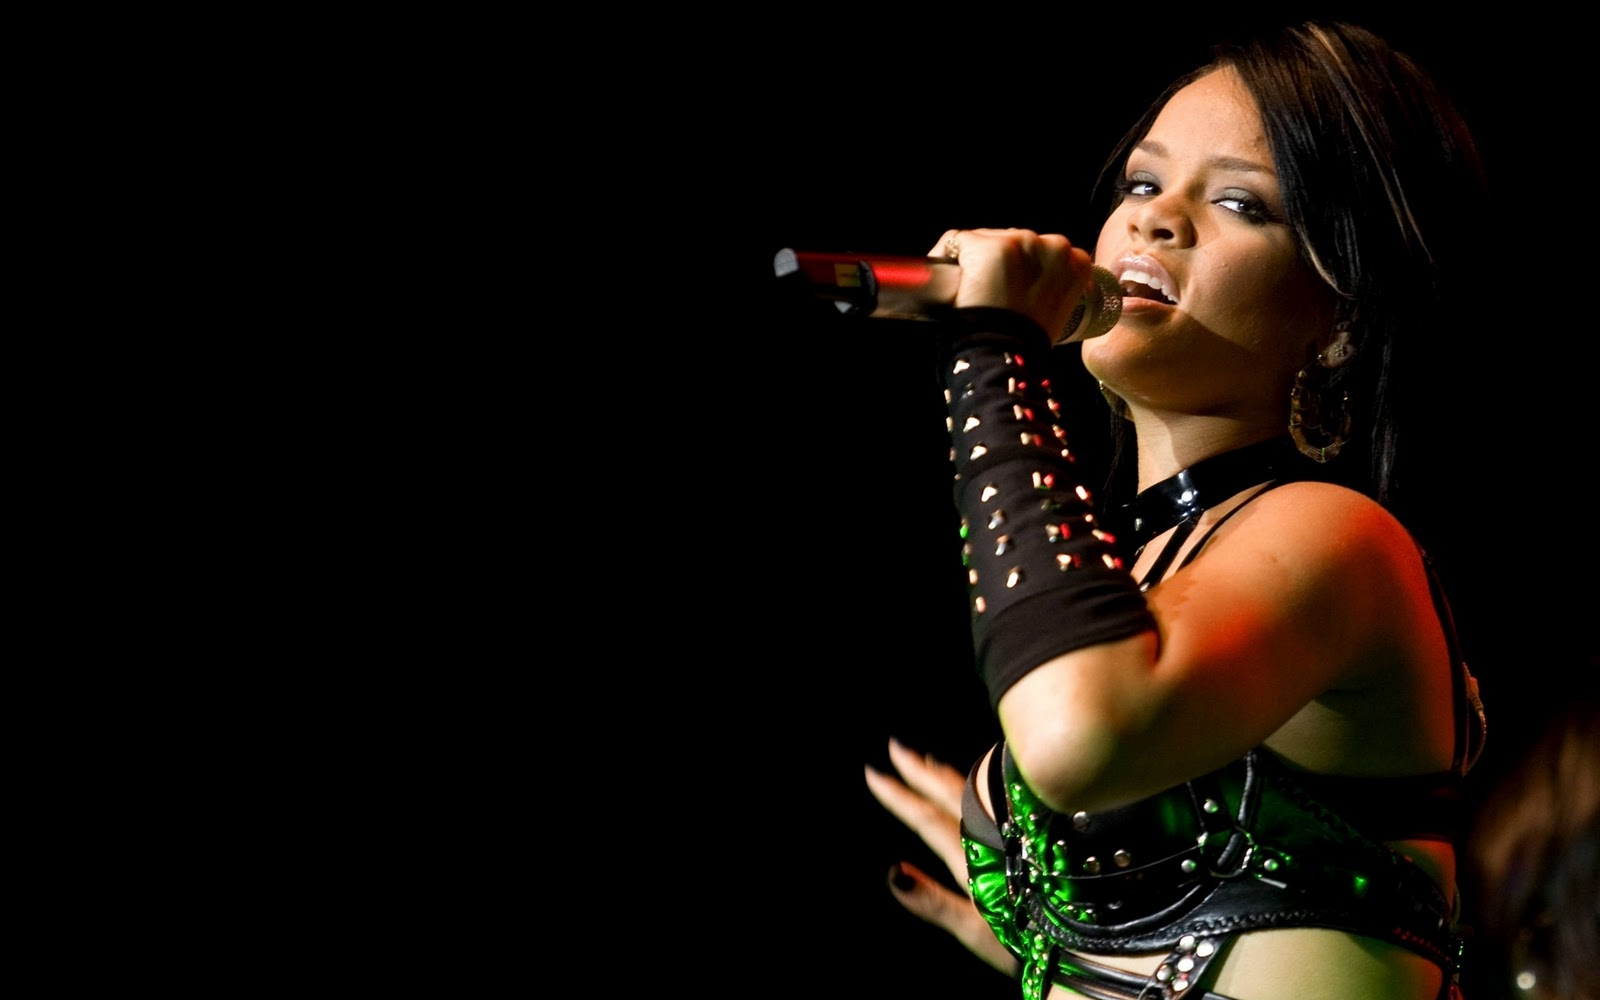 http://4.bp.blogspot.com/-1t4w1-naKn8/T7VWlTvN68I/AAAAAAAAA2w/_-shroeyHjg/s1600/Rihanna+Wallpapers+Download+03.jpg